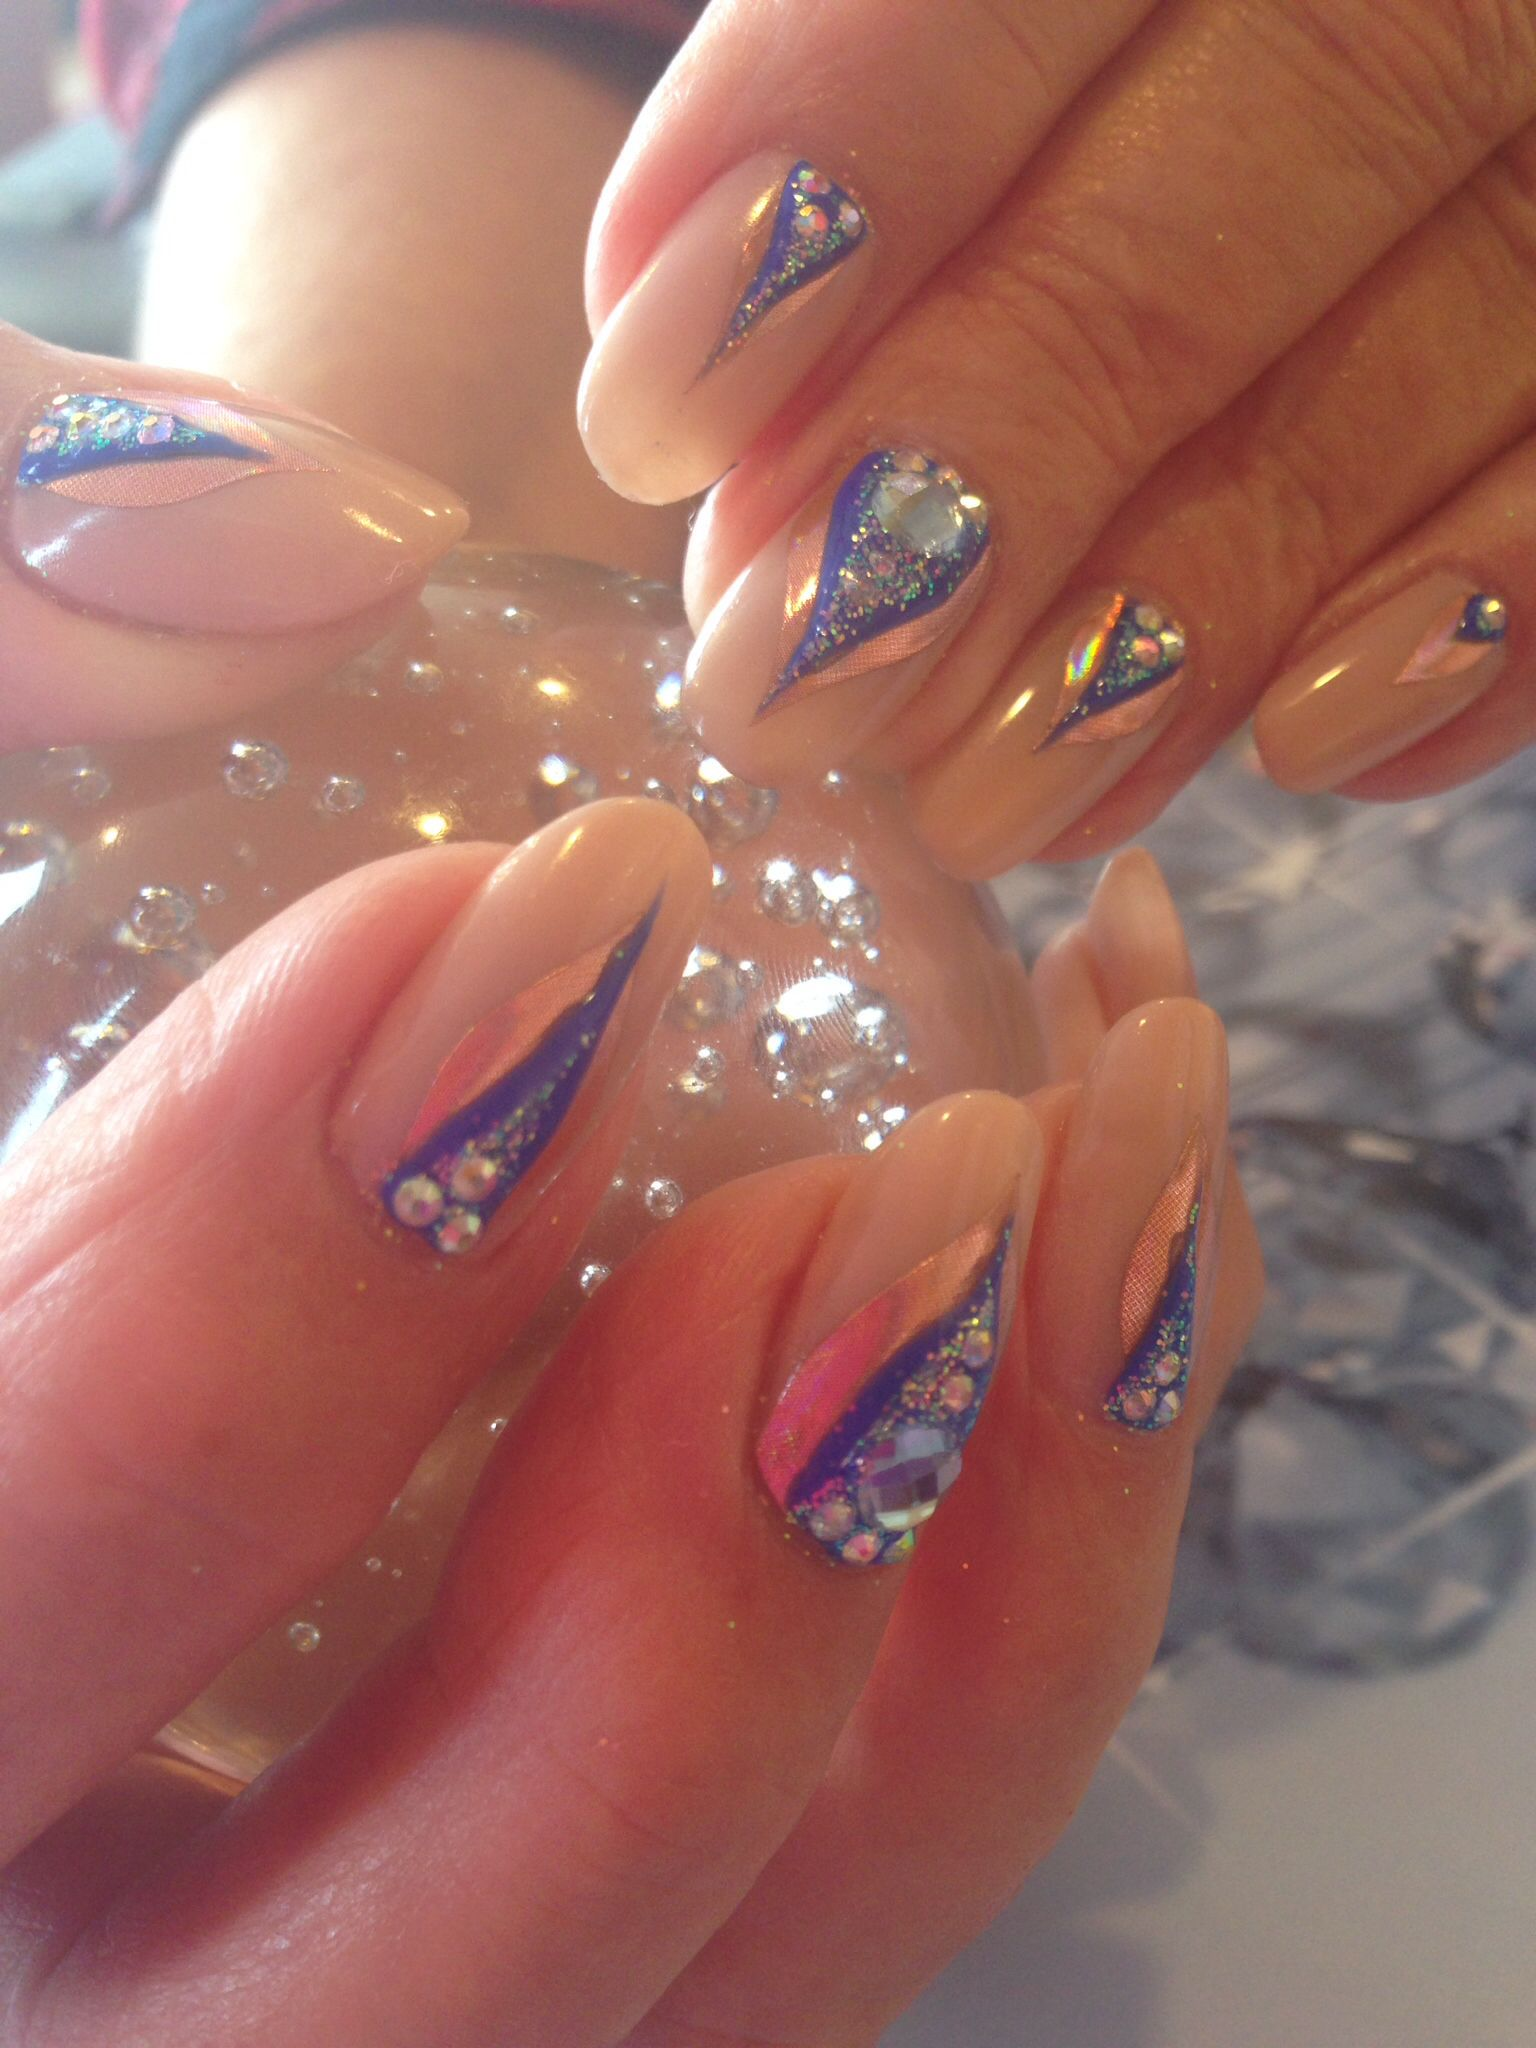 Cnd Shellac With Empower Nail Art Nails Pinterest